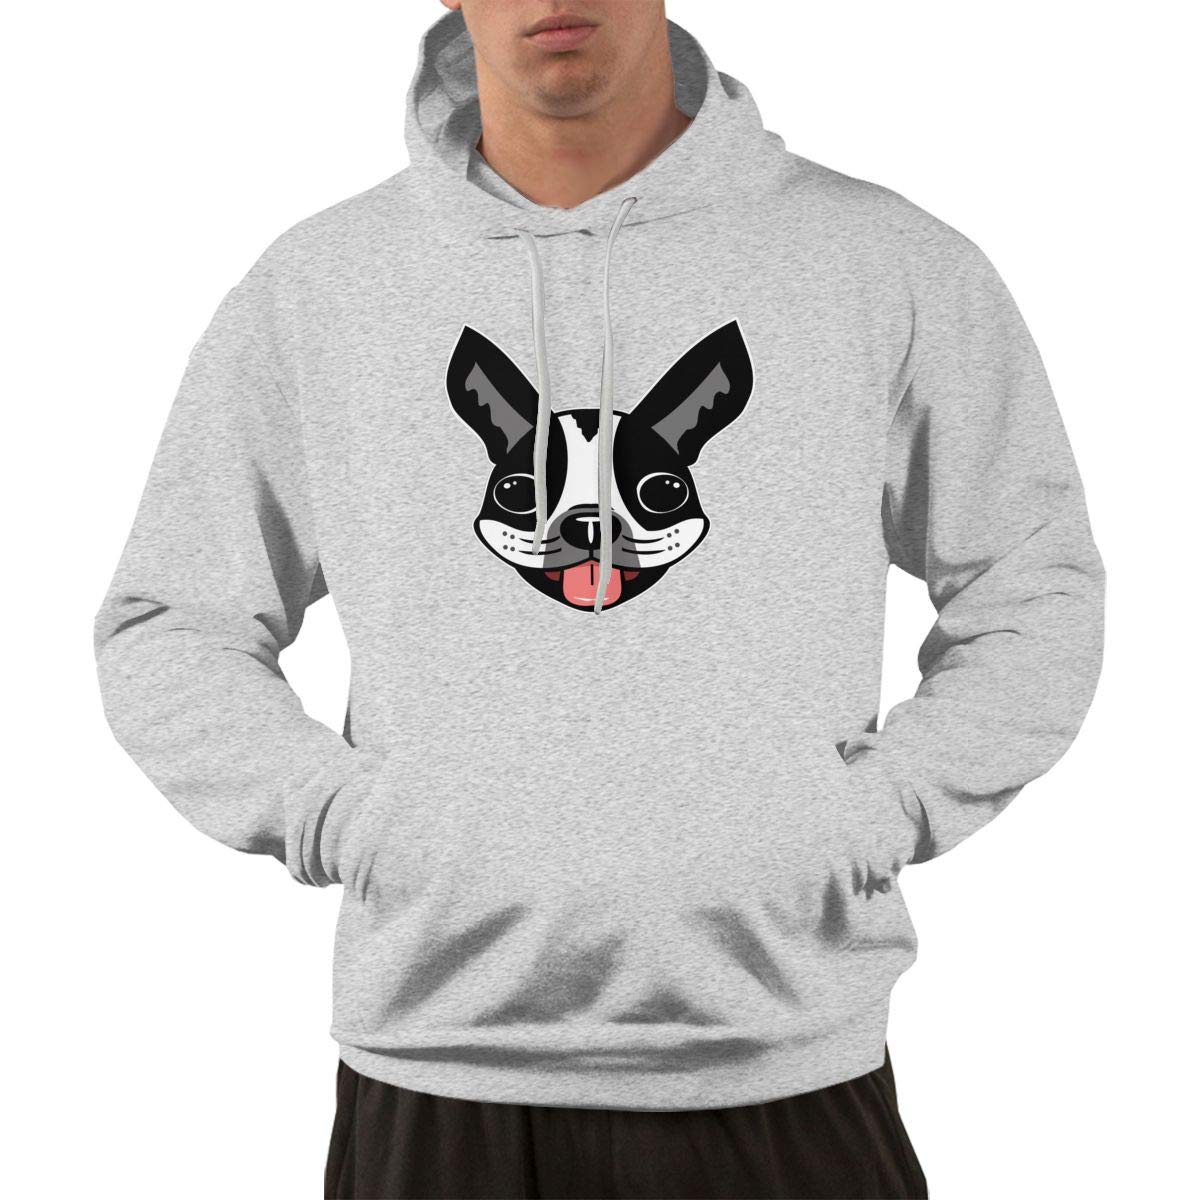 Milo The Boston Terrier Hoodie Mens Autum Winter Gym Workout Jackets Outwear with Front Pocket